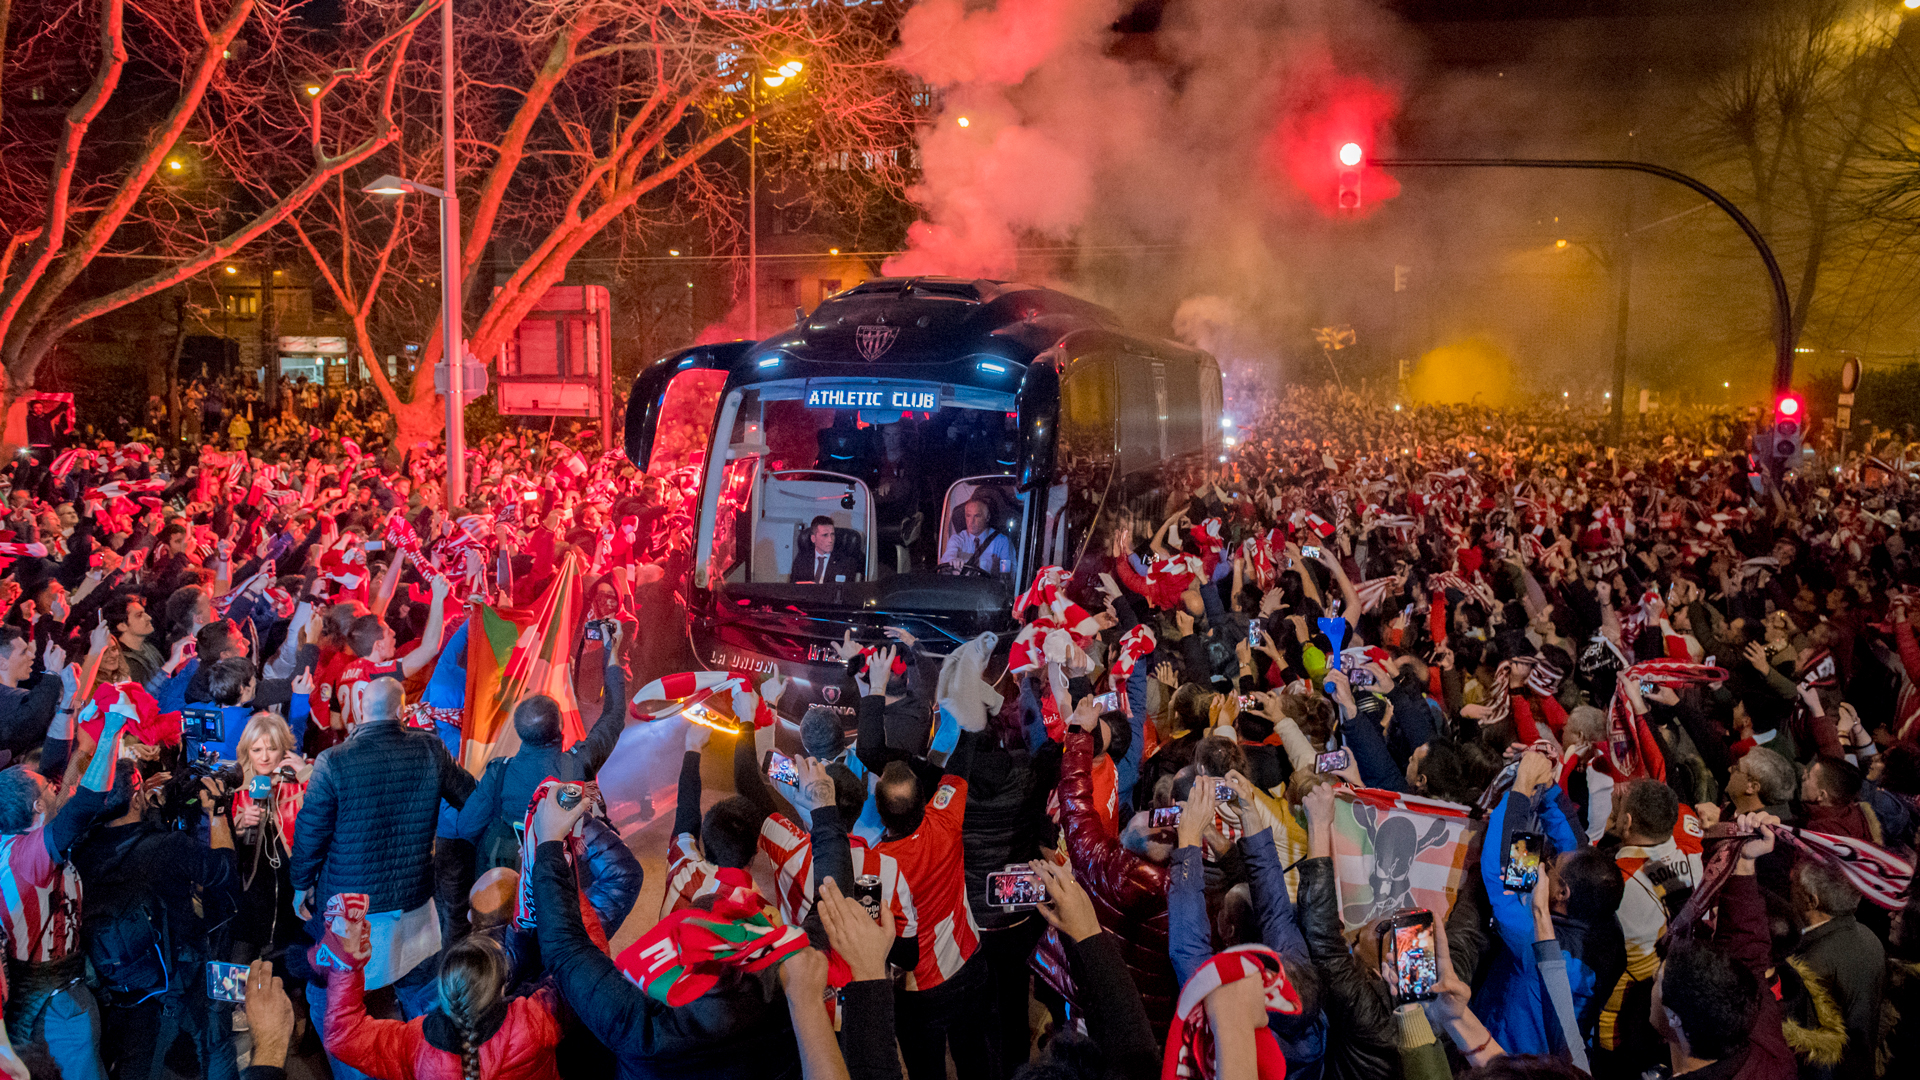 The story of Athletic Club's team bus